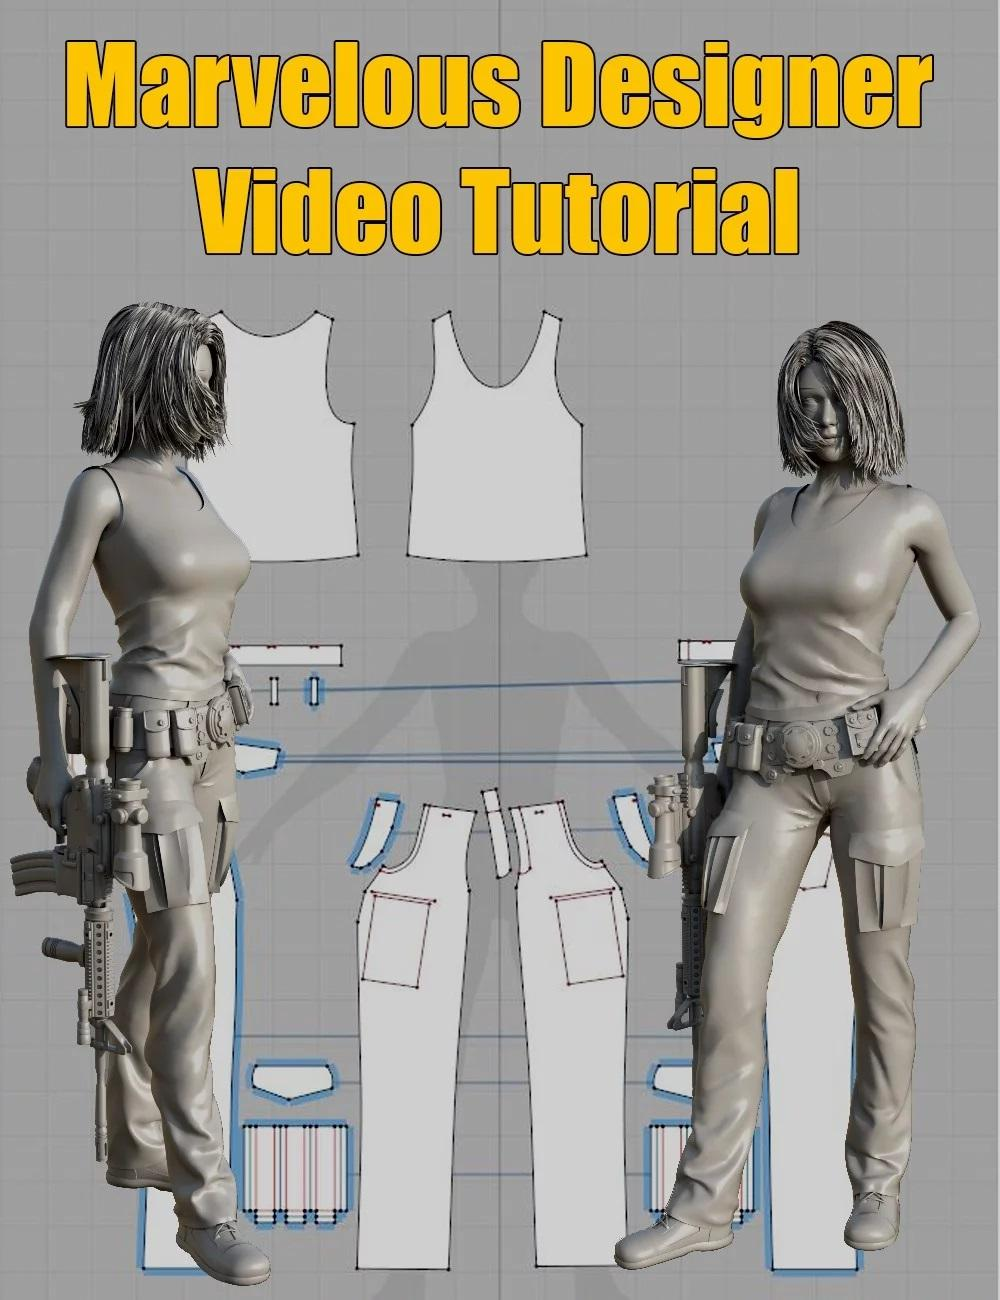 Marvelous Designer Video Tutorial